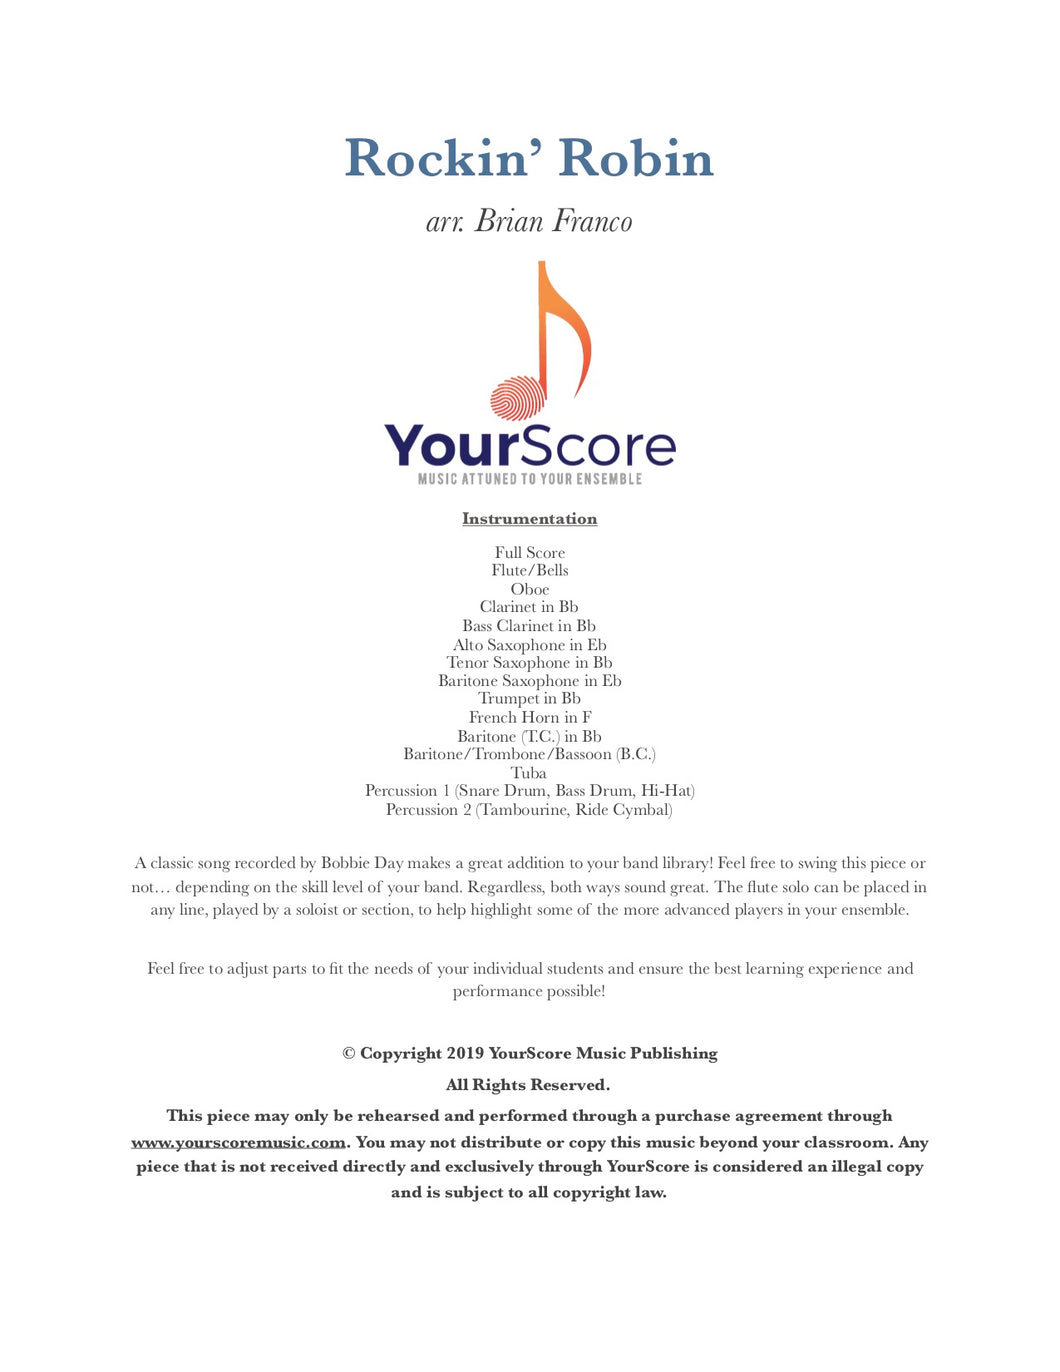 Cover of Rockin' Robin, an adaptable elementary band piece arranged by Brian Franco